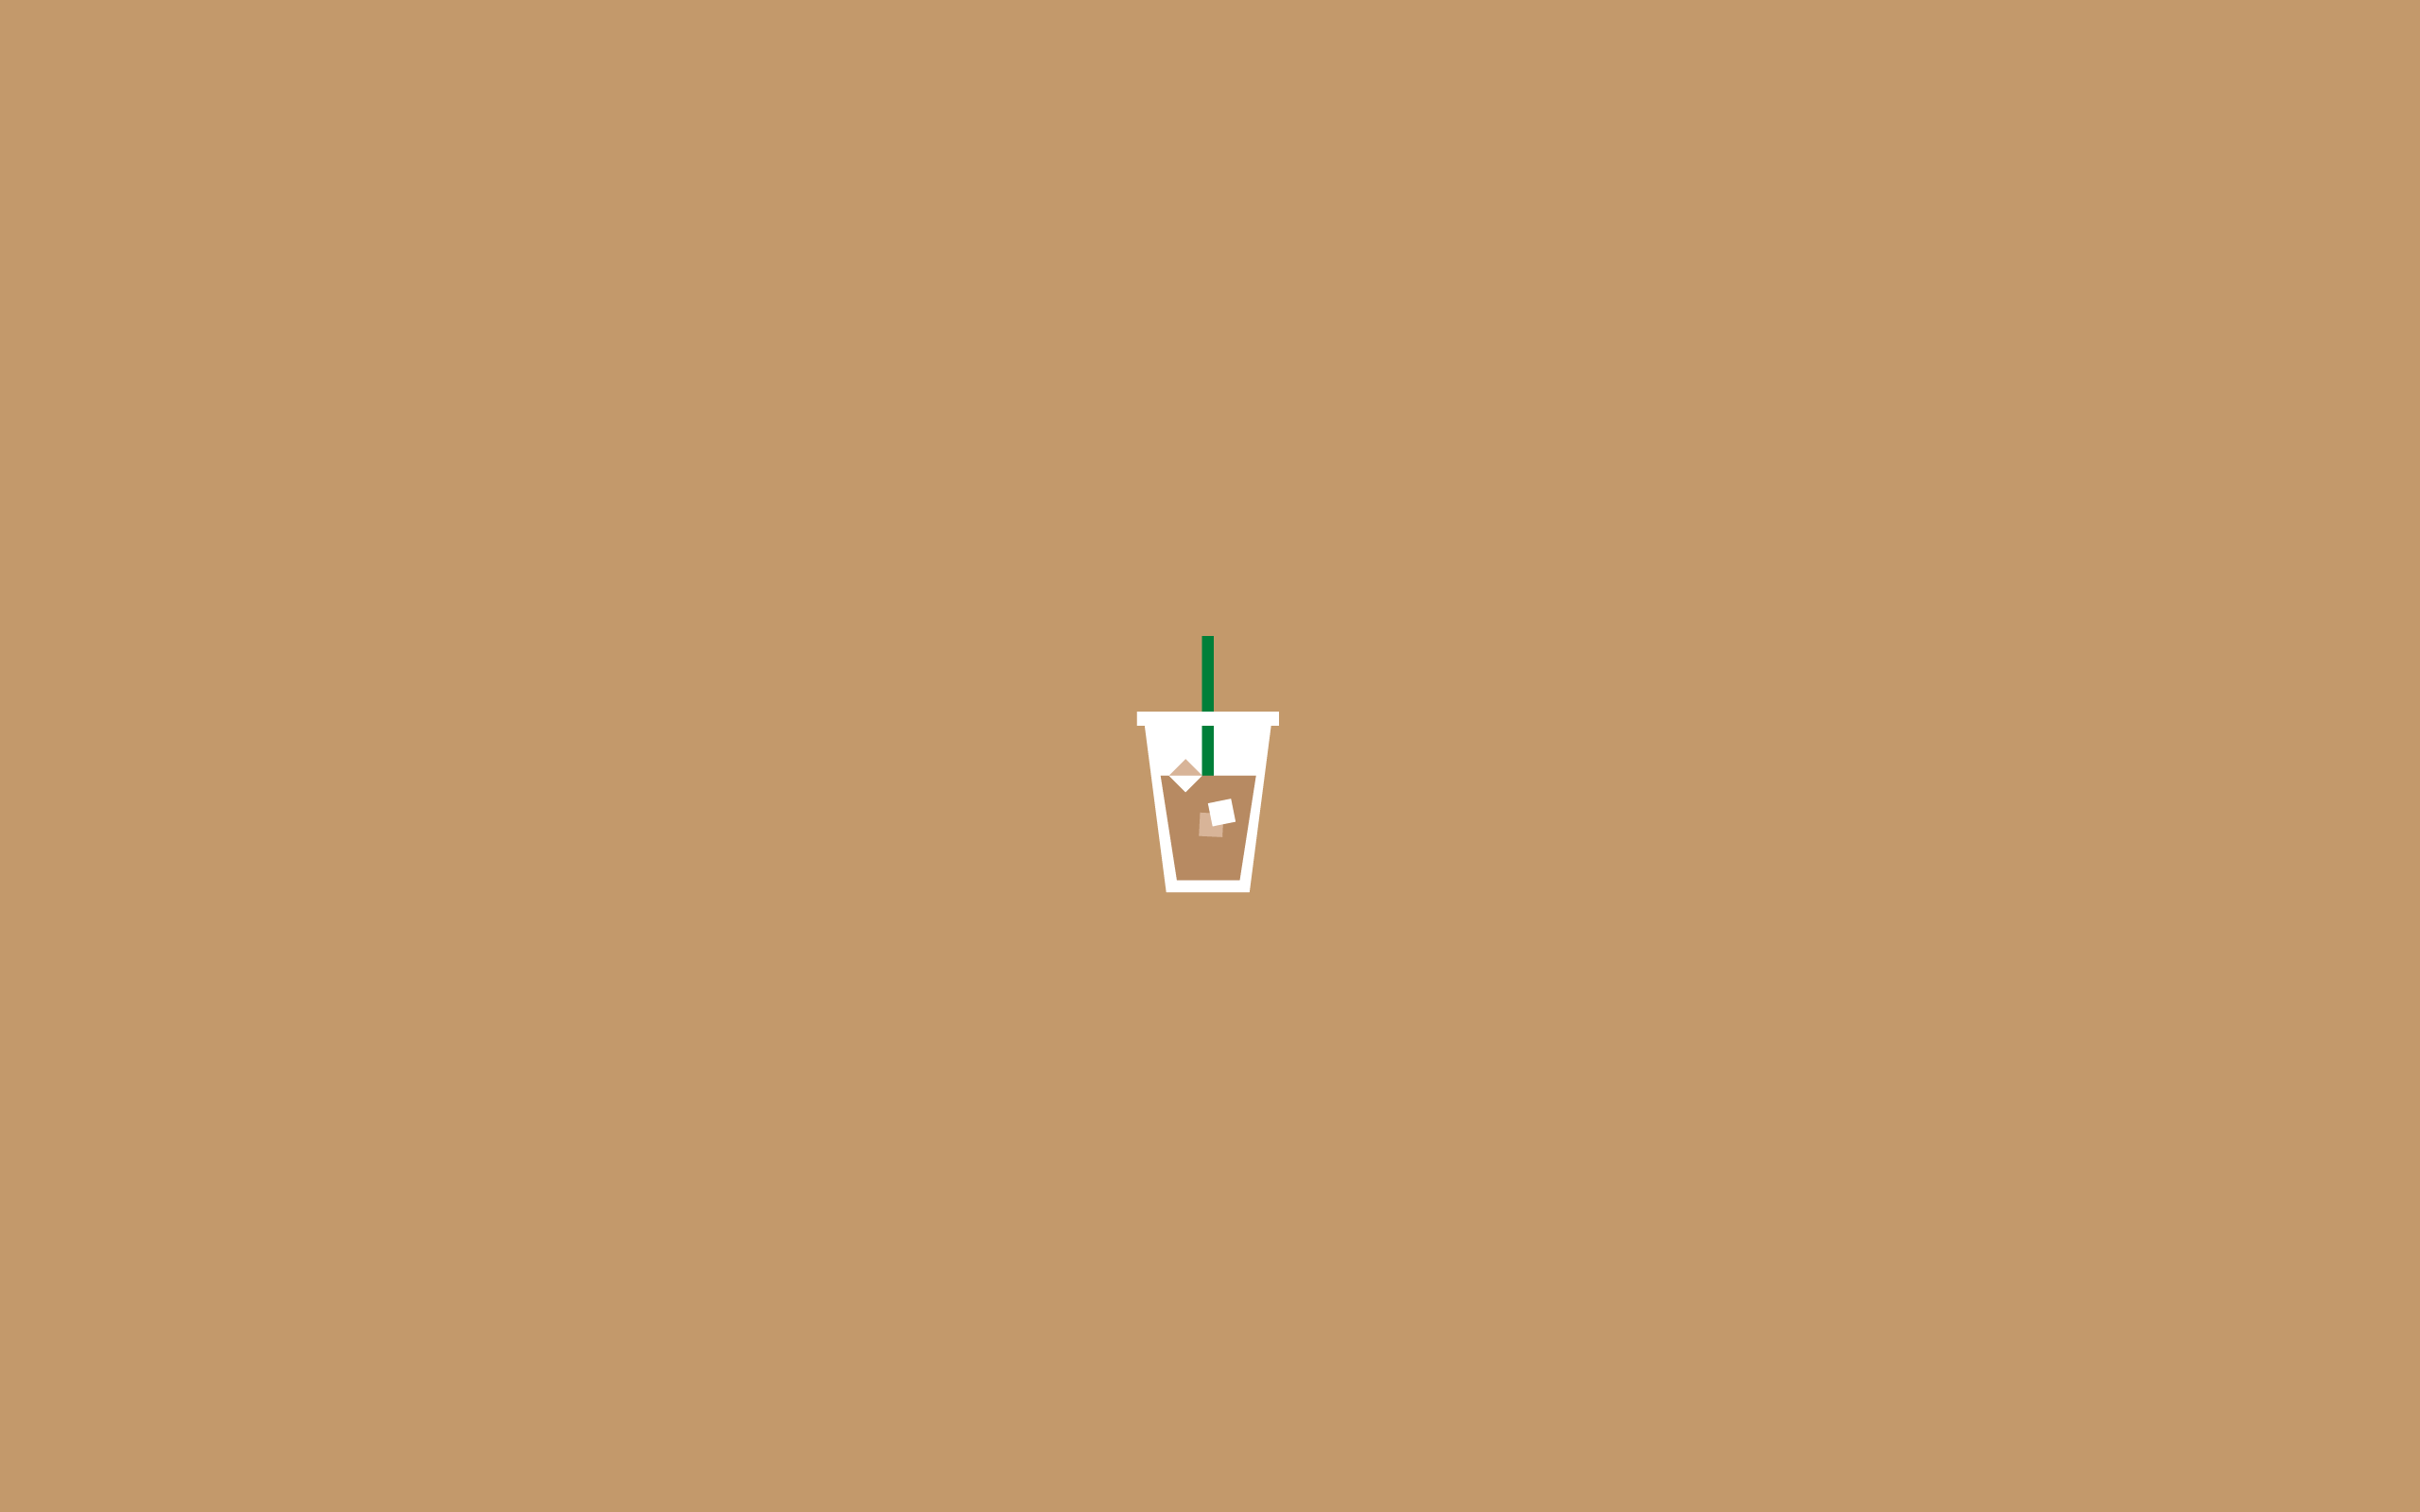 Basic Bish Starbucks In 2019 Minimalist Desktop